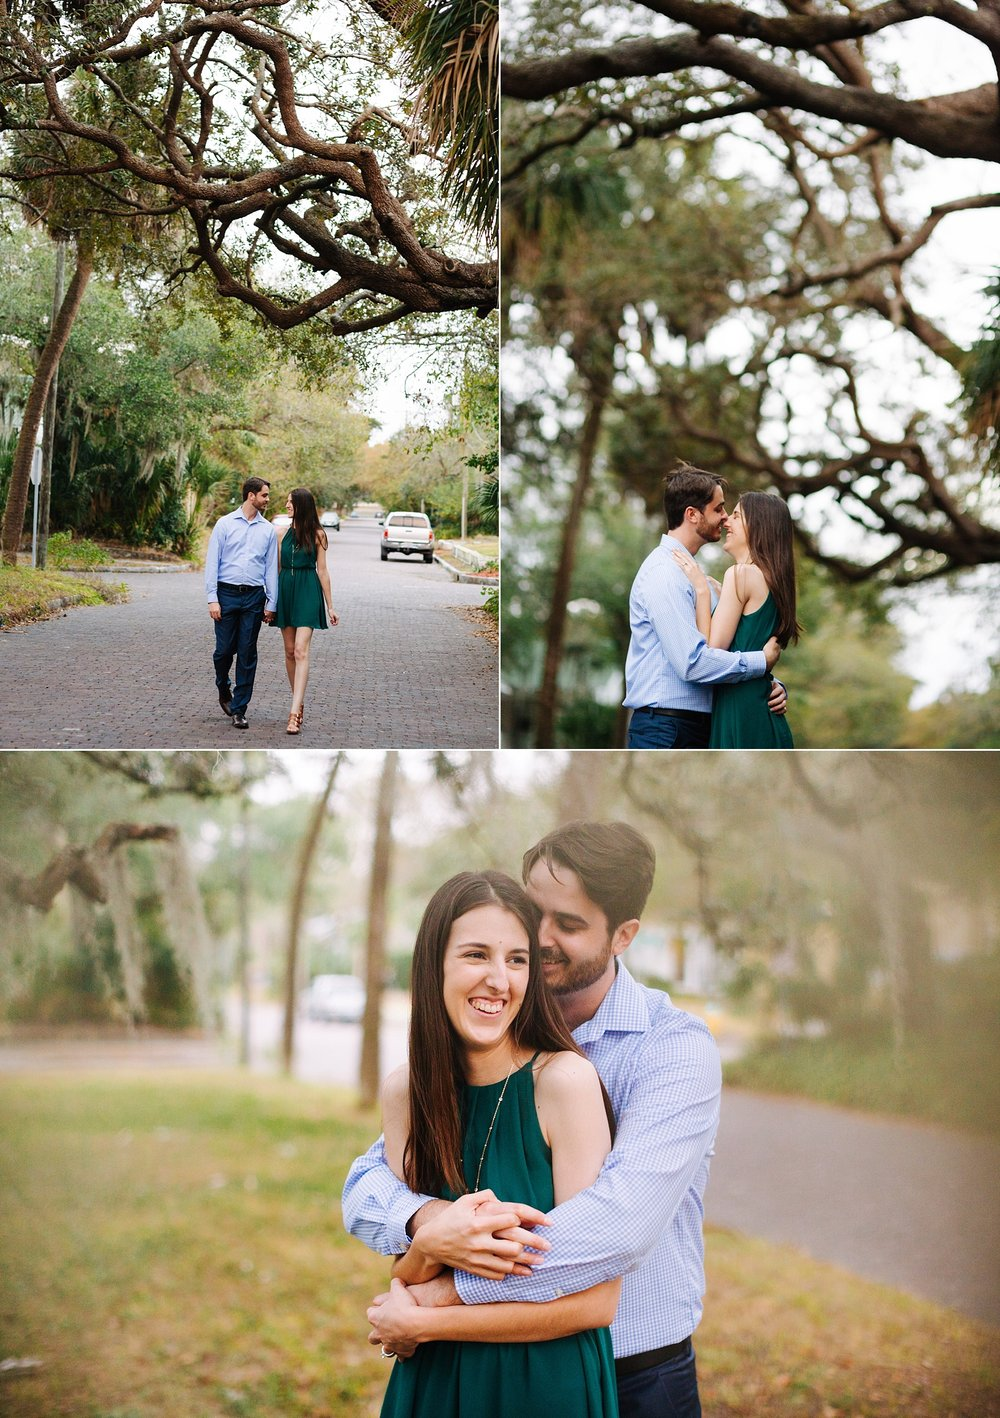 Jake & Katie Photography Seminole Heights Engagement Photos David & Cailyn-018.jpg